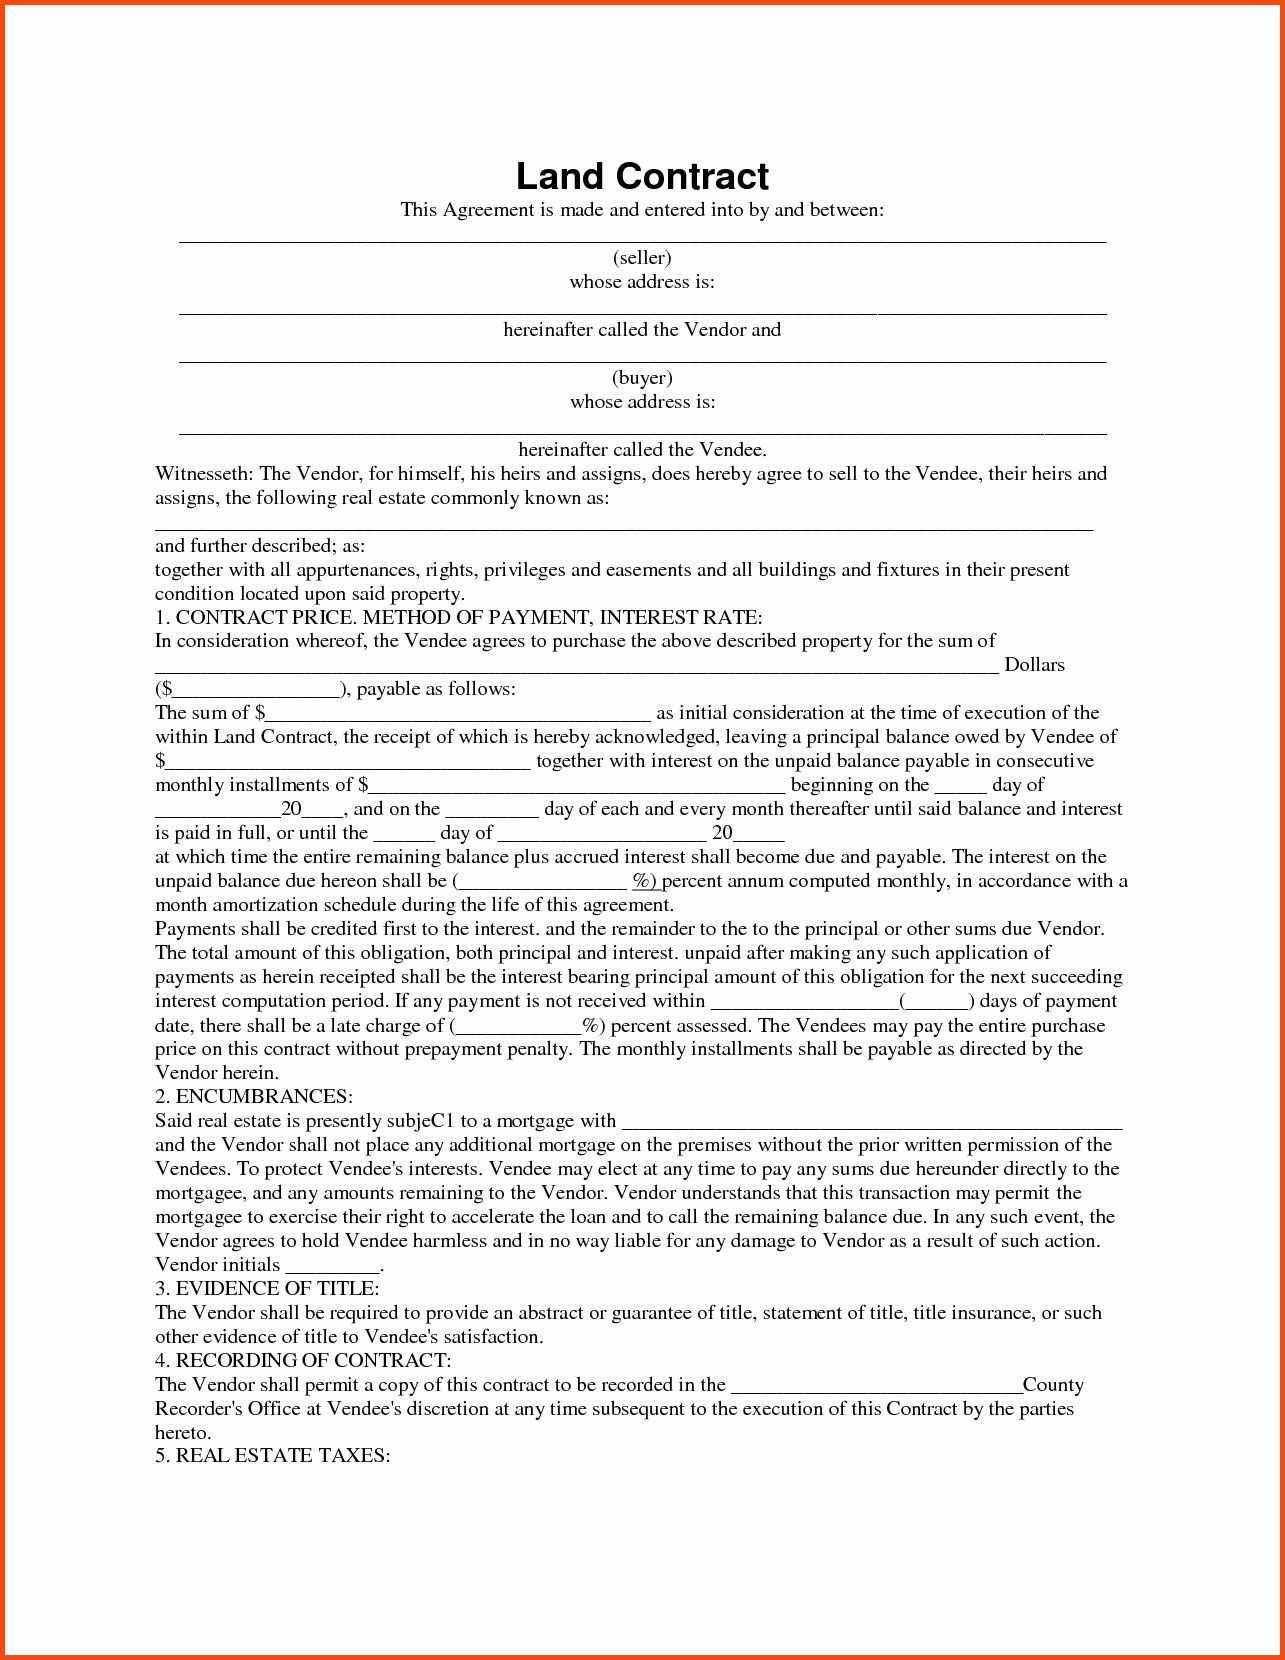 Land Contract Template Ohio Awesome Contract Inspiration Land Contract Form Land Contract Form Contract Template Contract Templates